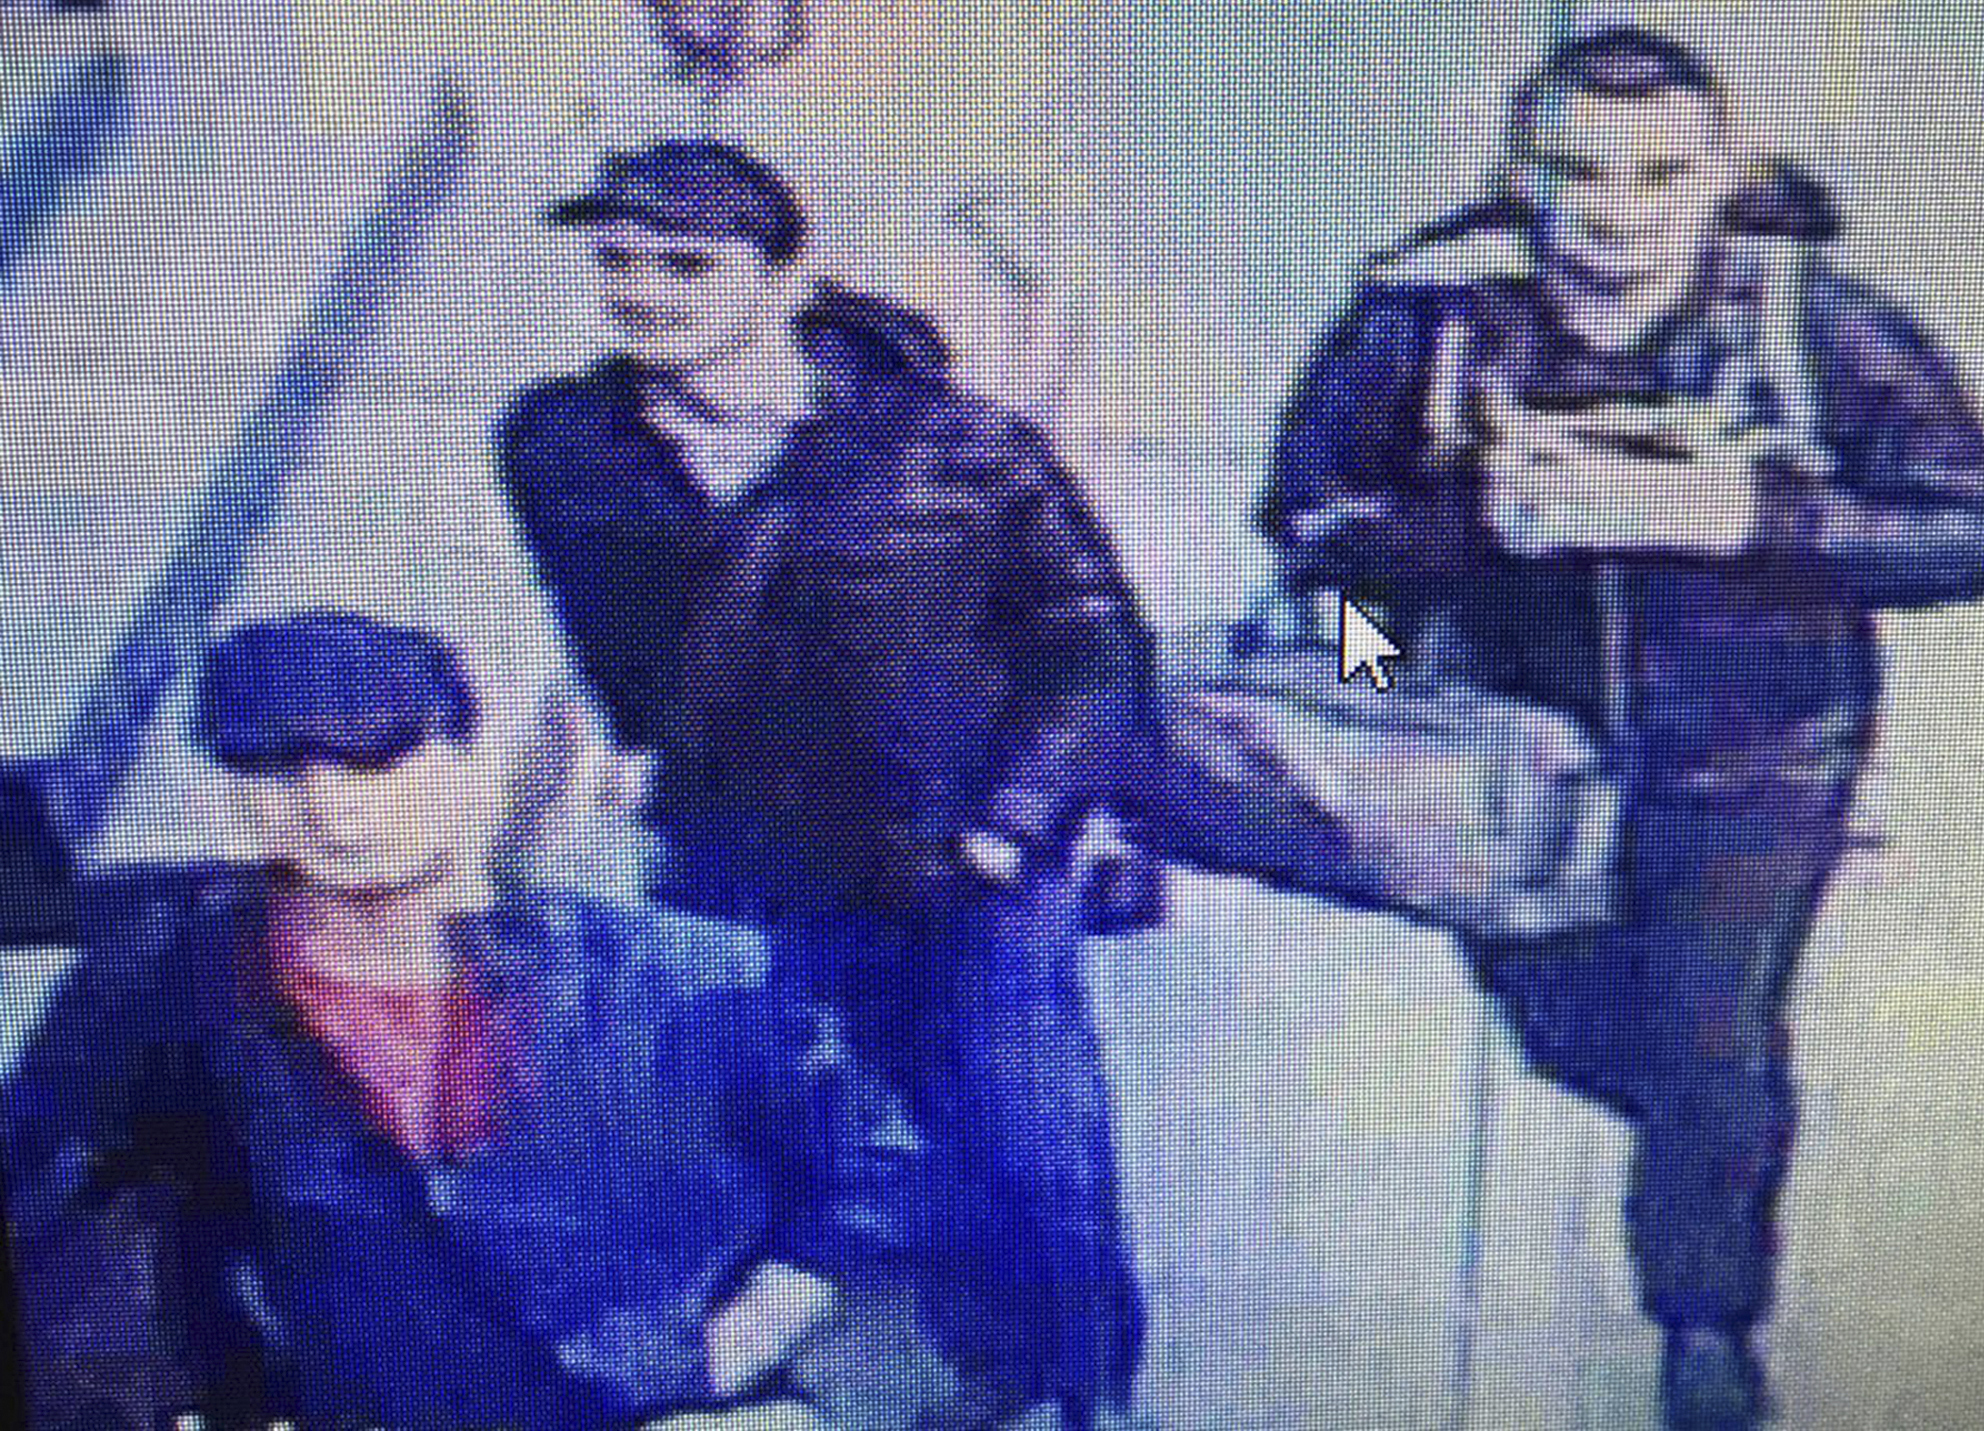 In this photo made from a video, people believed to be the attackers walk in Istanbul's Ataturk airport, June 28, 2016. Turkish authorities have banned distribution of images relating to the Ataturk airport attack within Turkey.